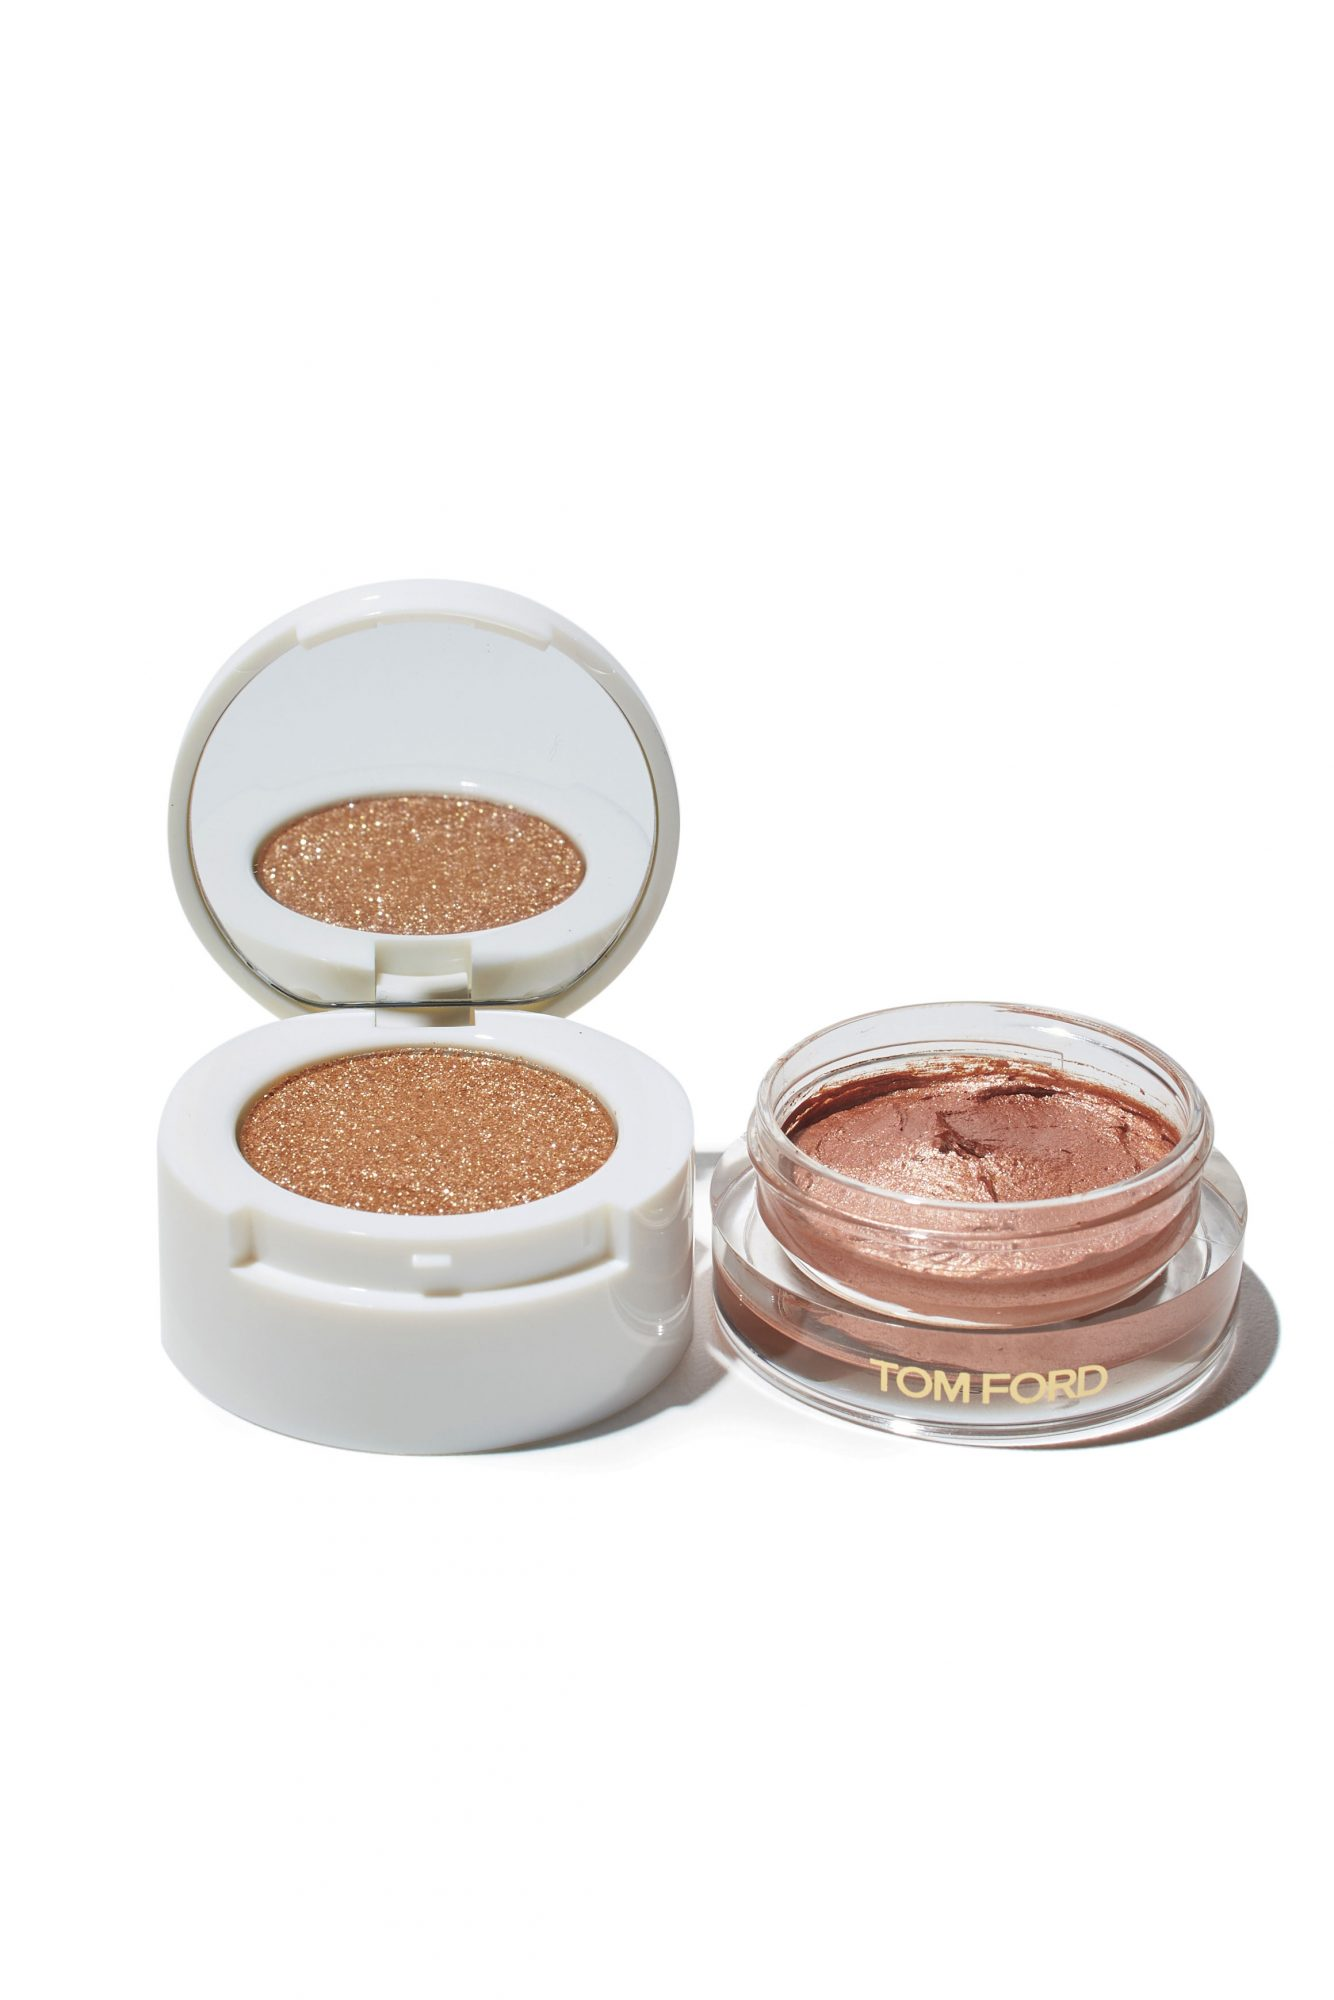 Tom Ford Cream and Powder Eye Color in Golden Peach